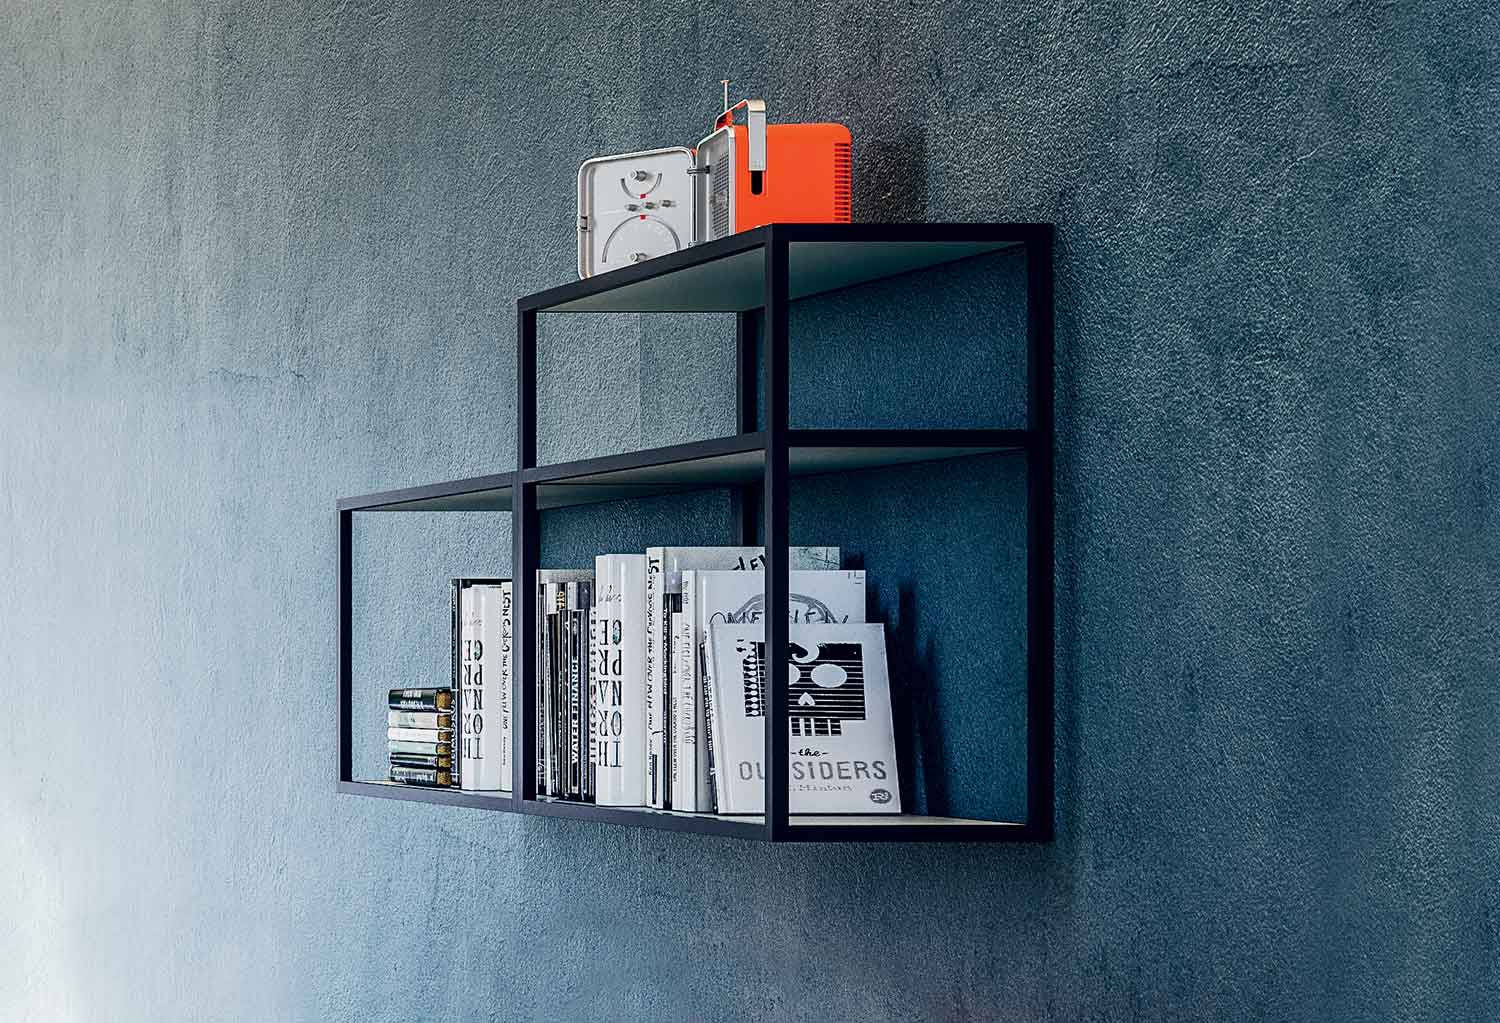 Two Kios shelves in horizontal models with 2 and 3 shelves